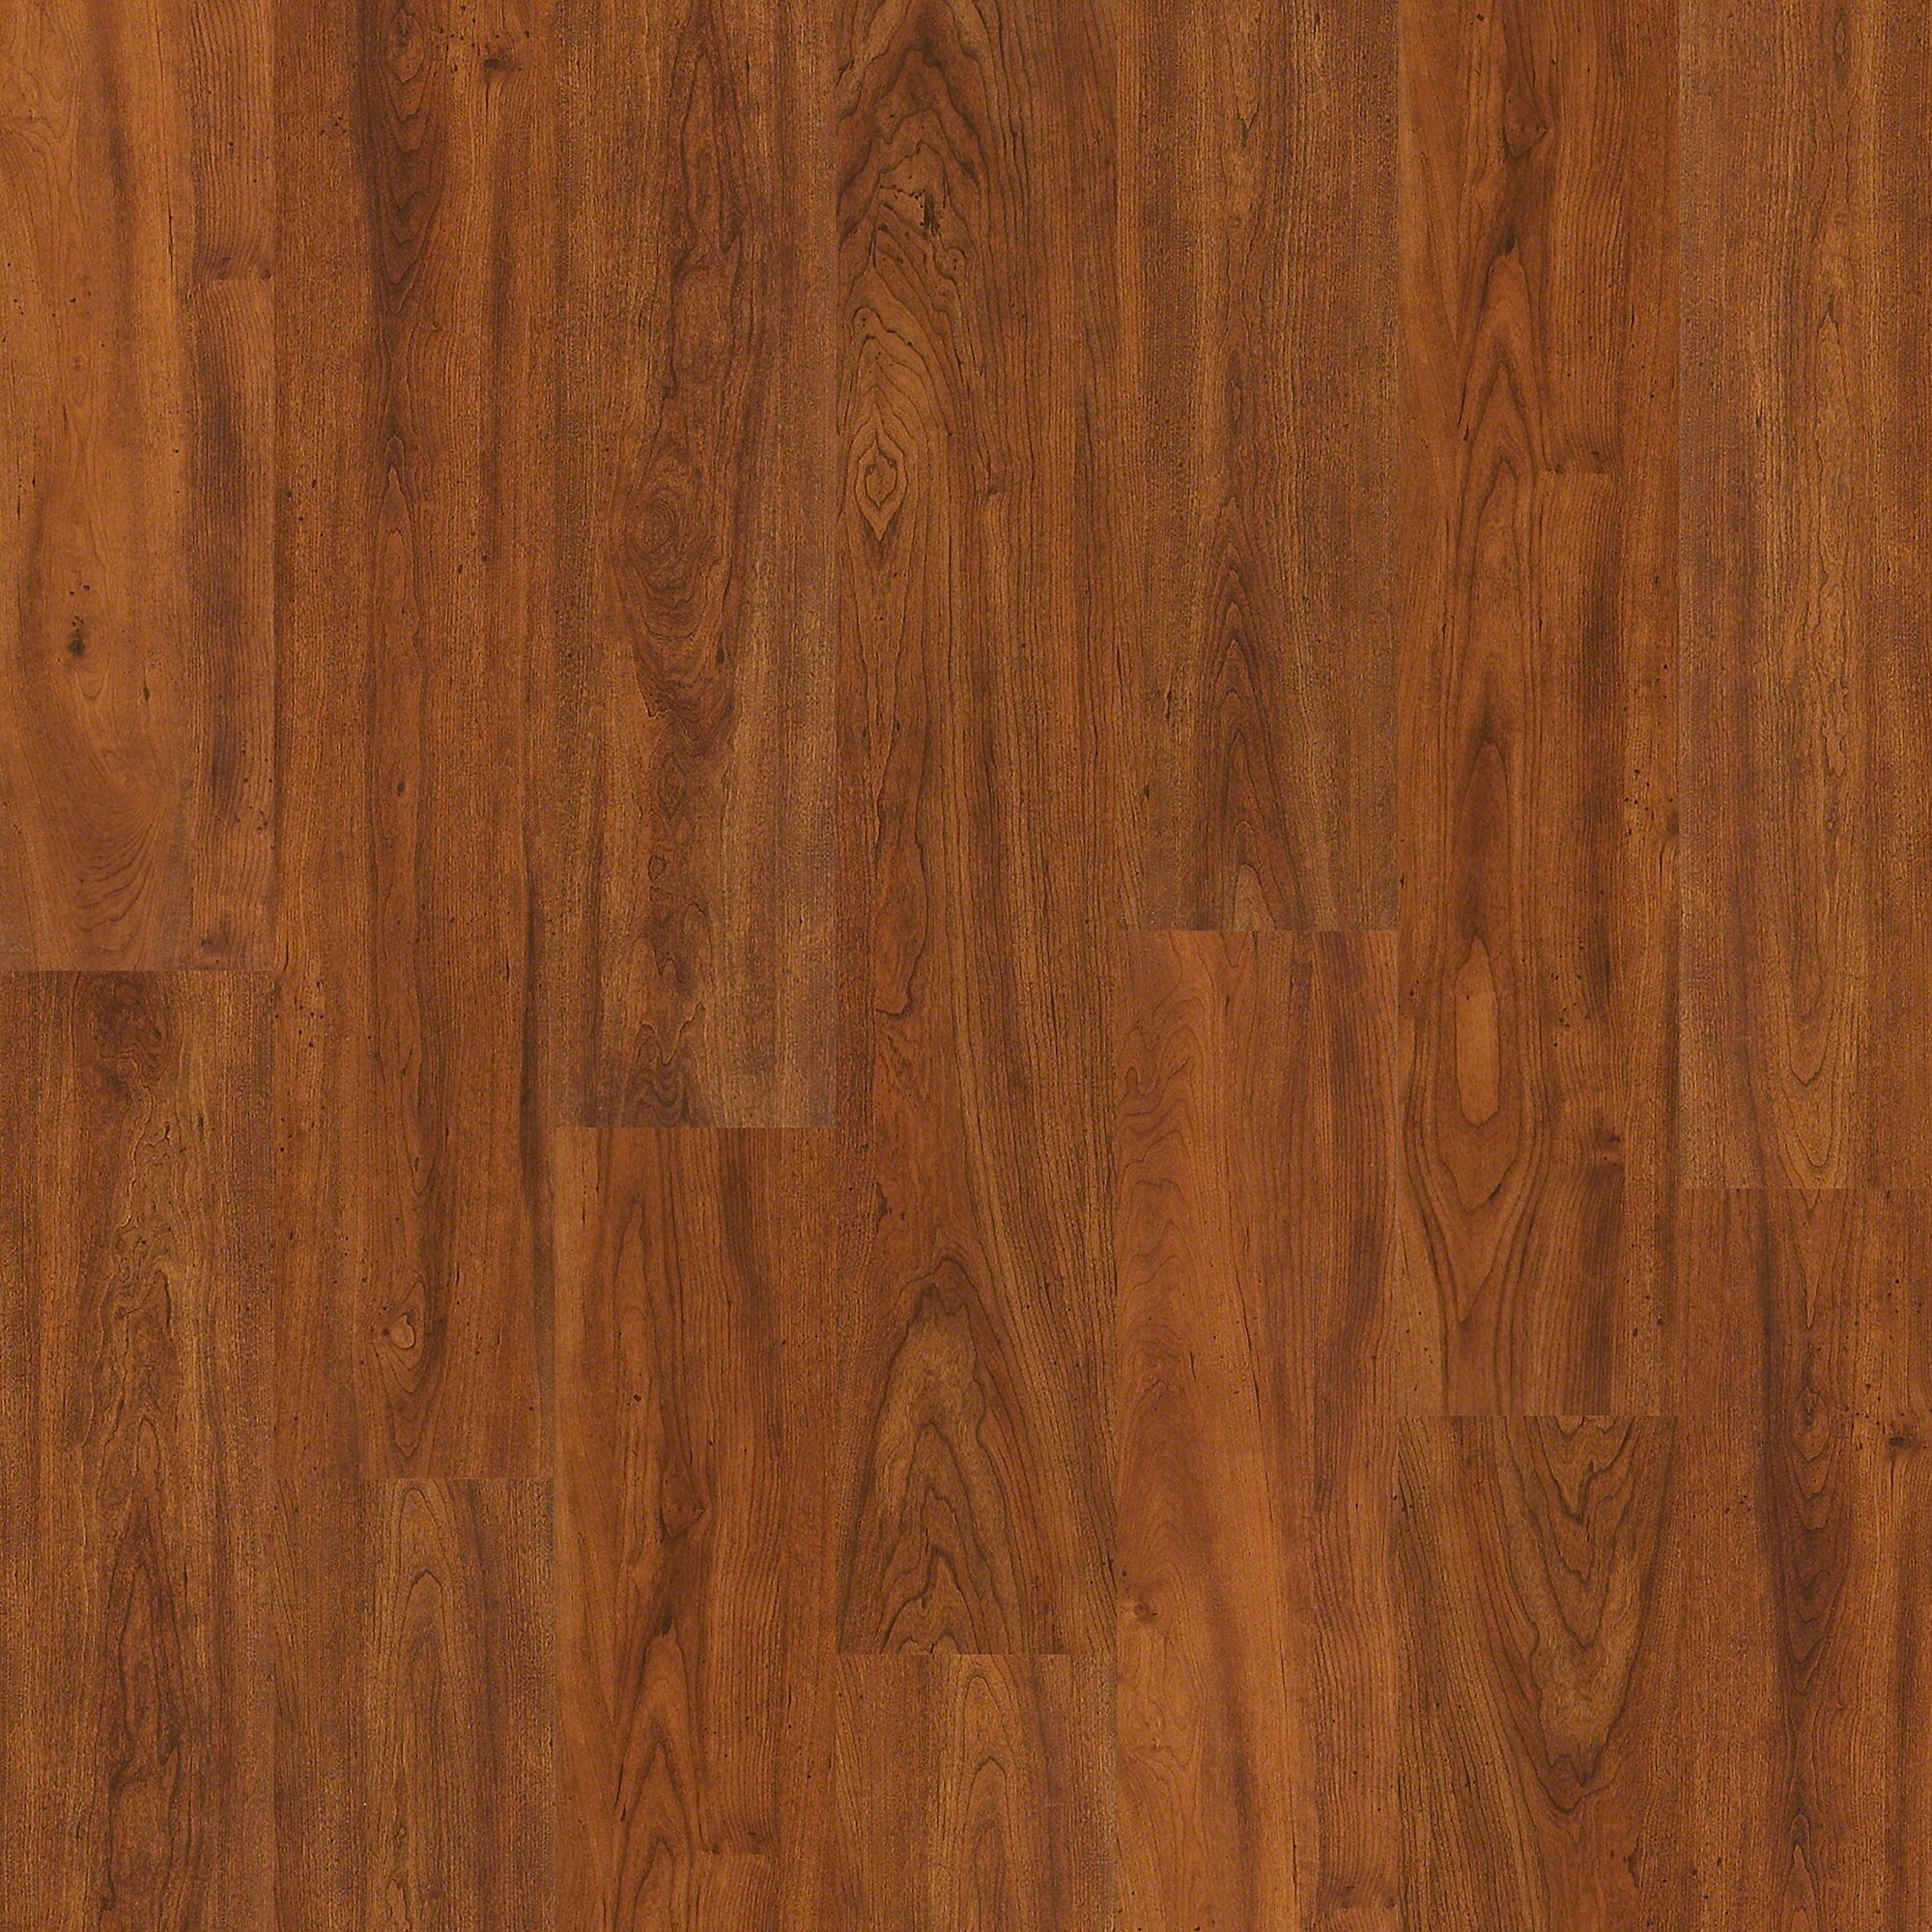 Cherry Laminate Flooring quick step qs700 enhanced cherry sfu007 laminate flooring Rosswood 8 X 48 X 794mm Cherry Laminate